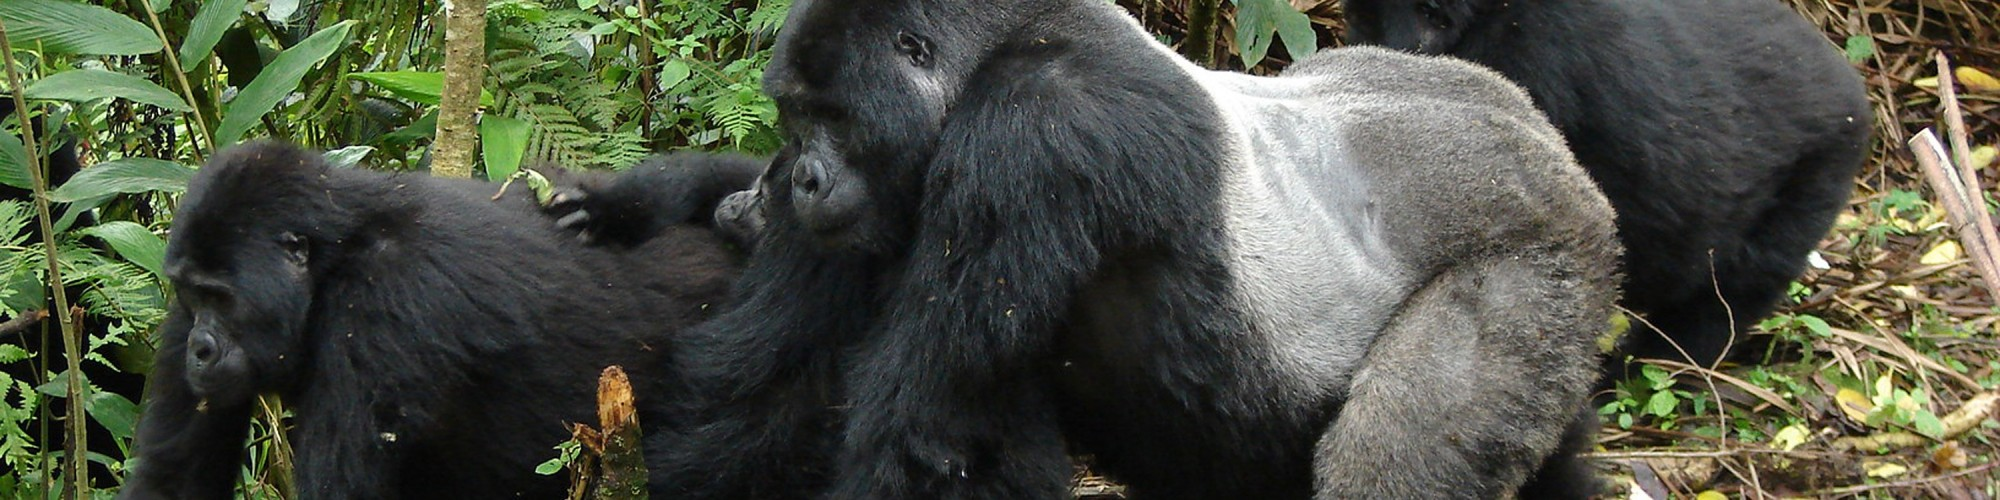 Bwindi Impenetrable Forest, Uganda(3)